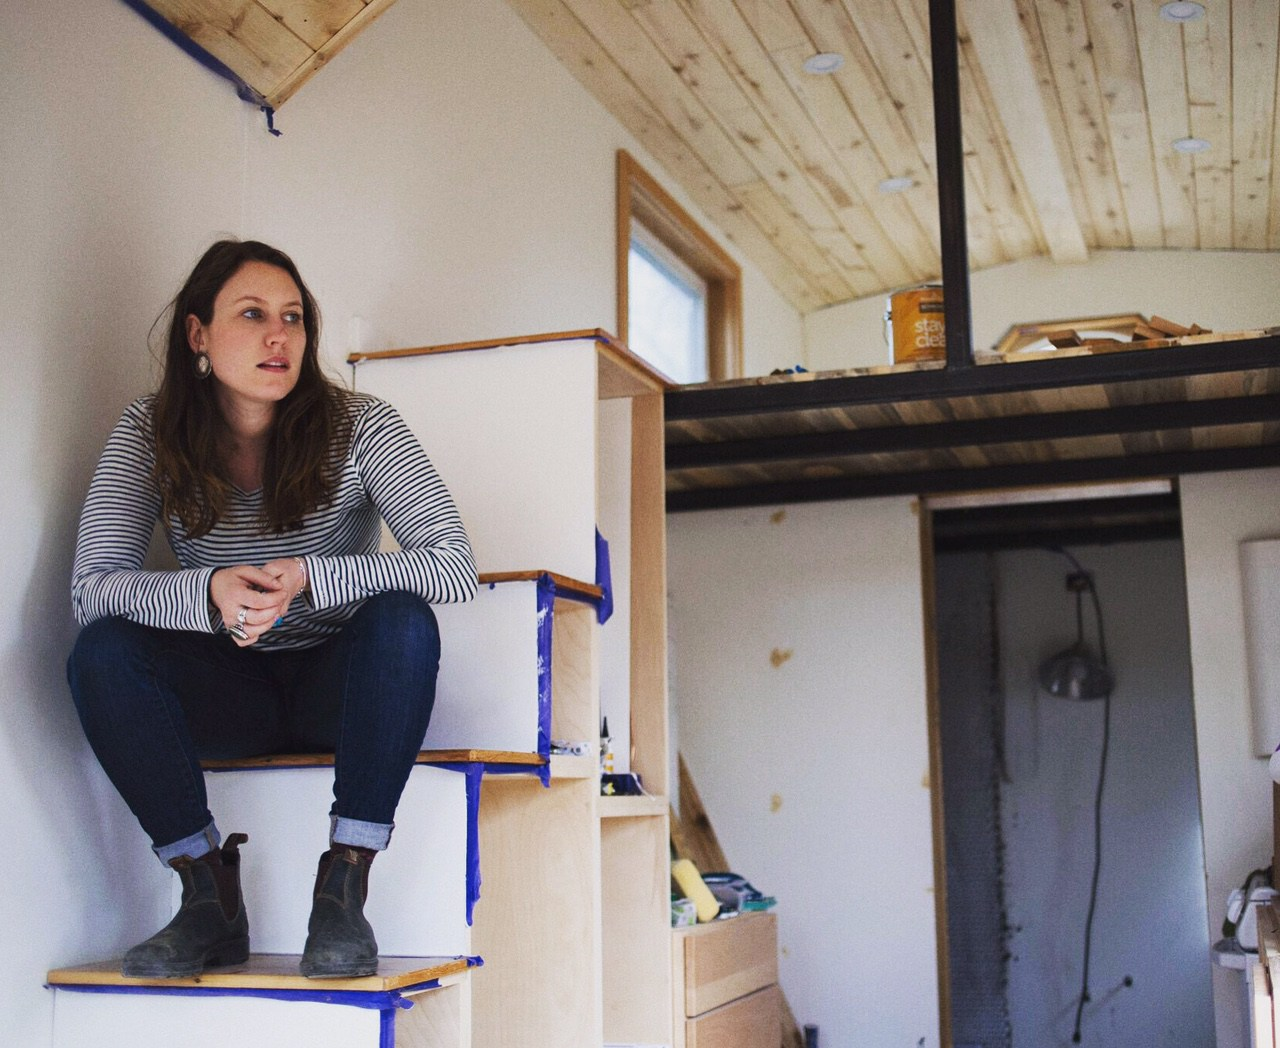 Isabelle Nagel-Brice, Queen of Tiny Houses